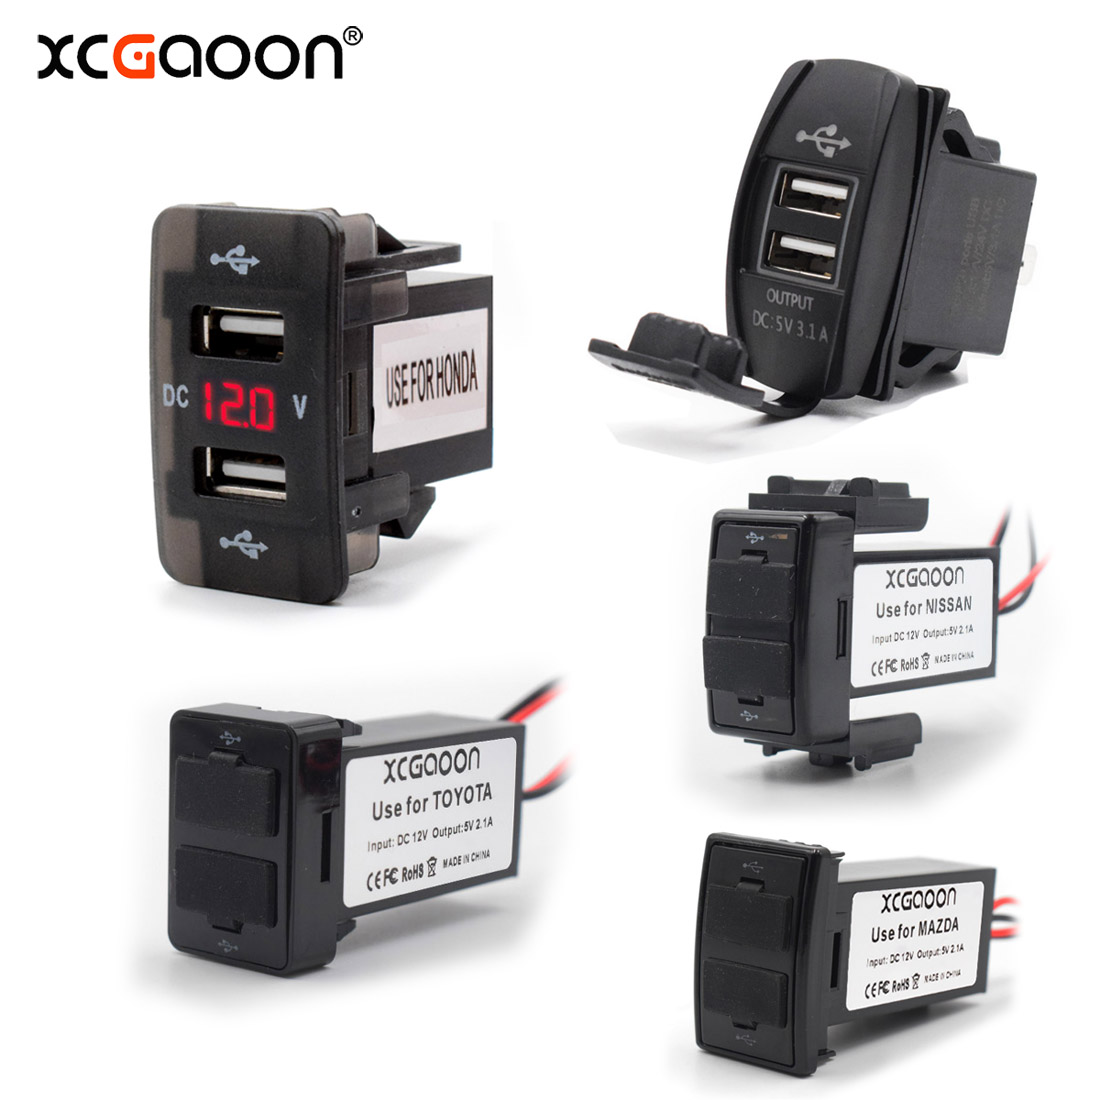 XCGaoon Special Dedicated <font><b>2</b></font> <font><b>USB</b></font> Interface Socket Car Charger for TOYOTA / HONDA / MITSUBISHI / NISSAN / MAZDA / SUZUKI image